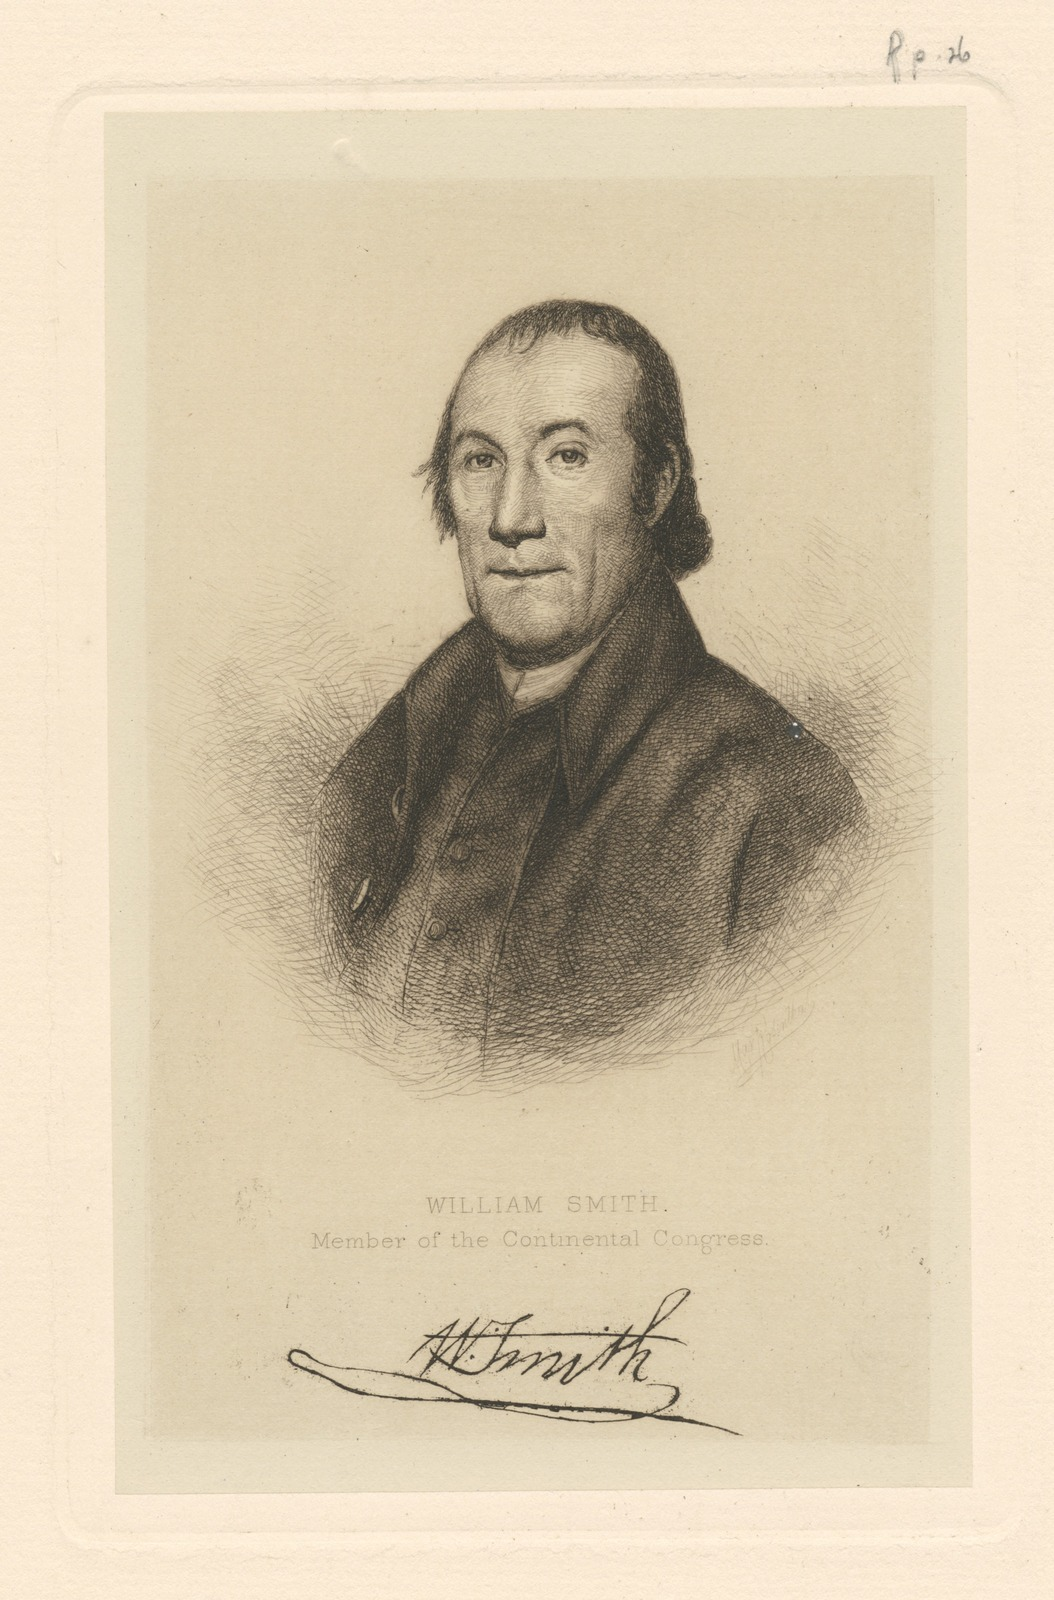 William Smith, member of the Continental Congress.